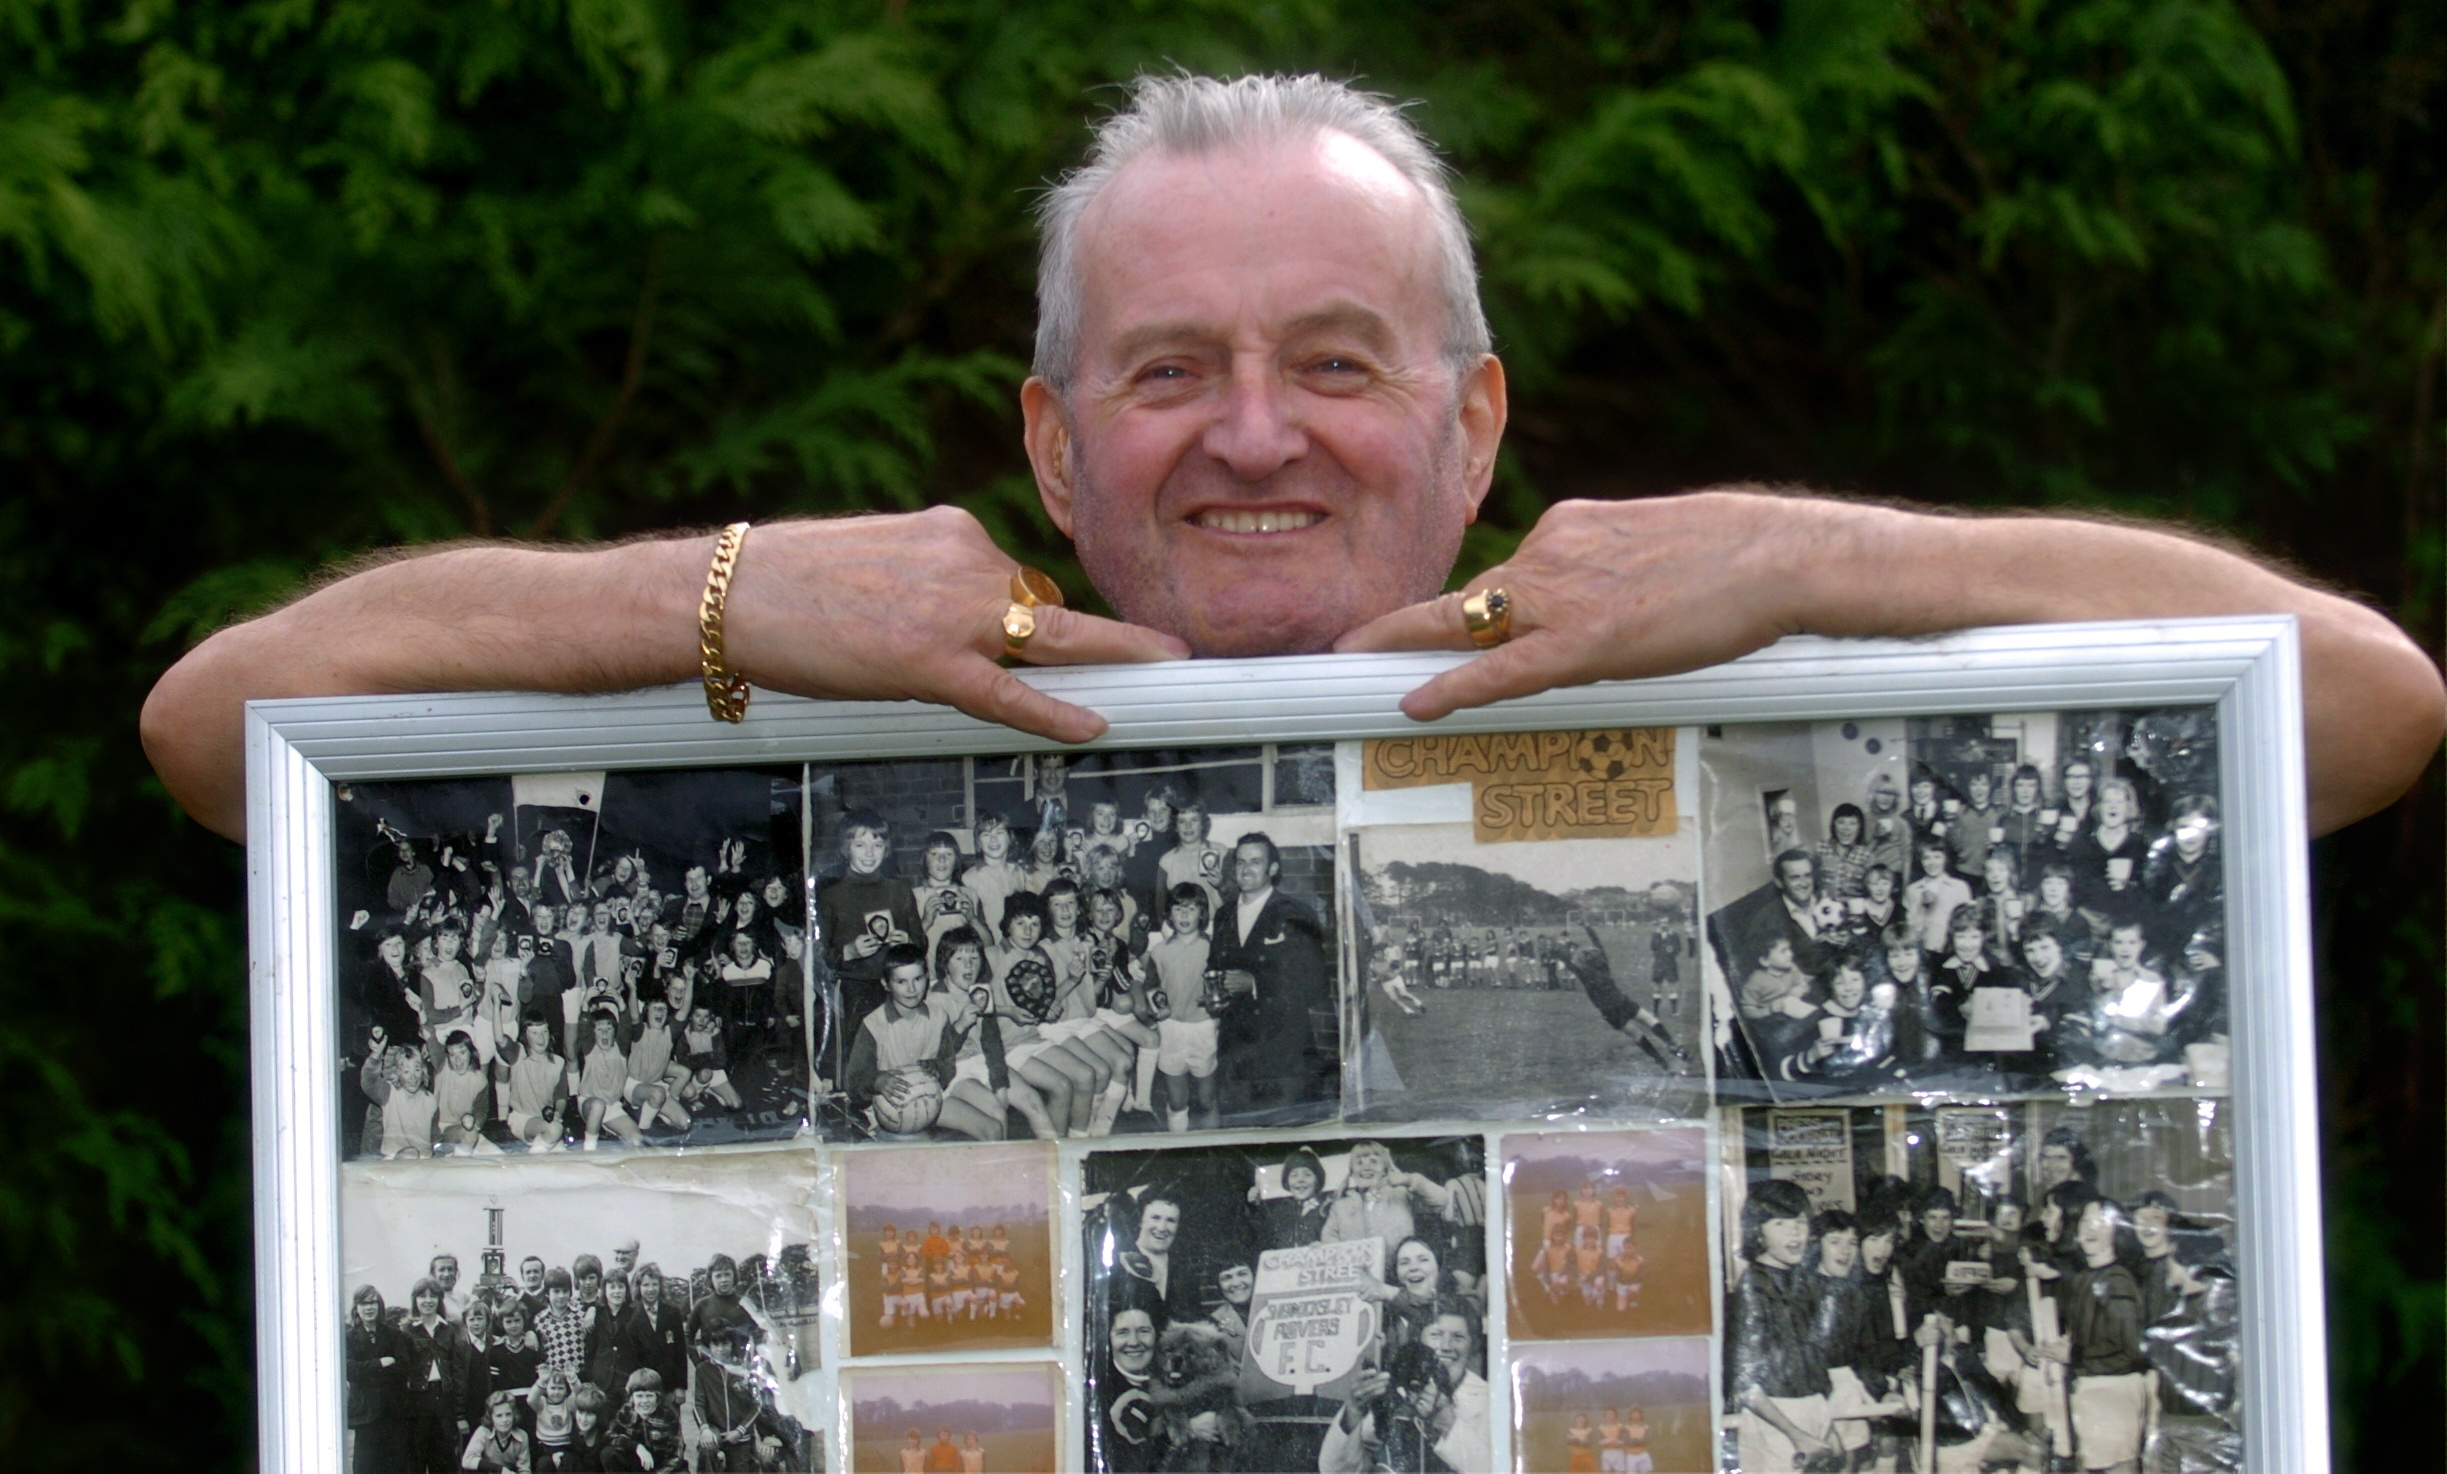 HAPPY MEMORIES:  Stan Buchan with pictures of the team he coached to win the Evening Express-backed Champion Street league.